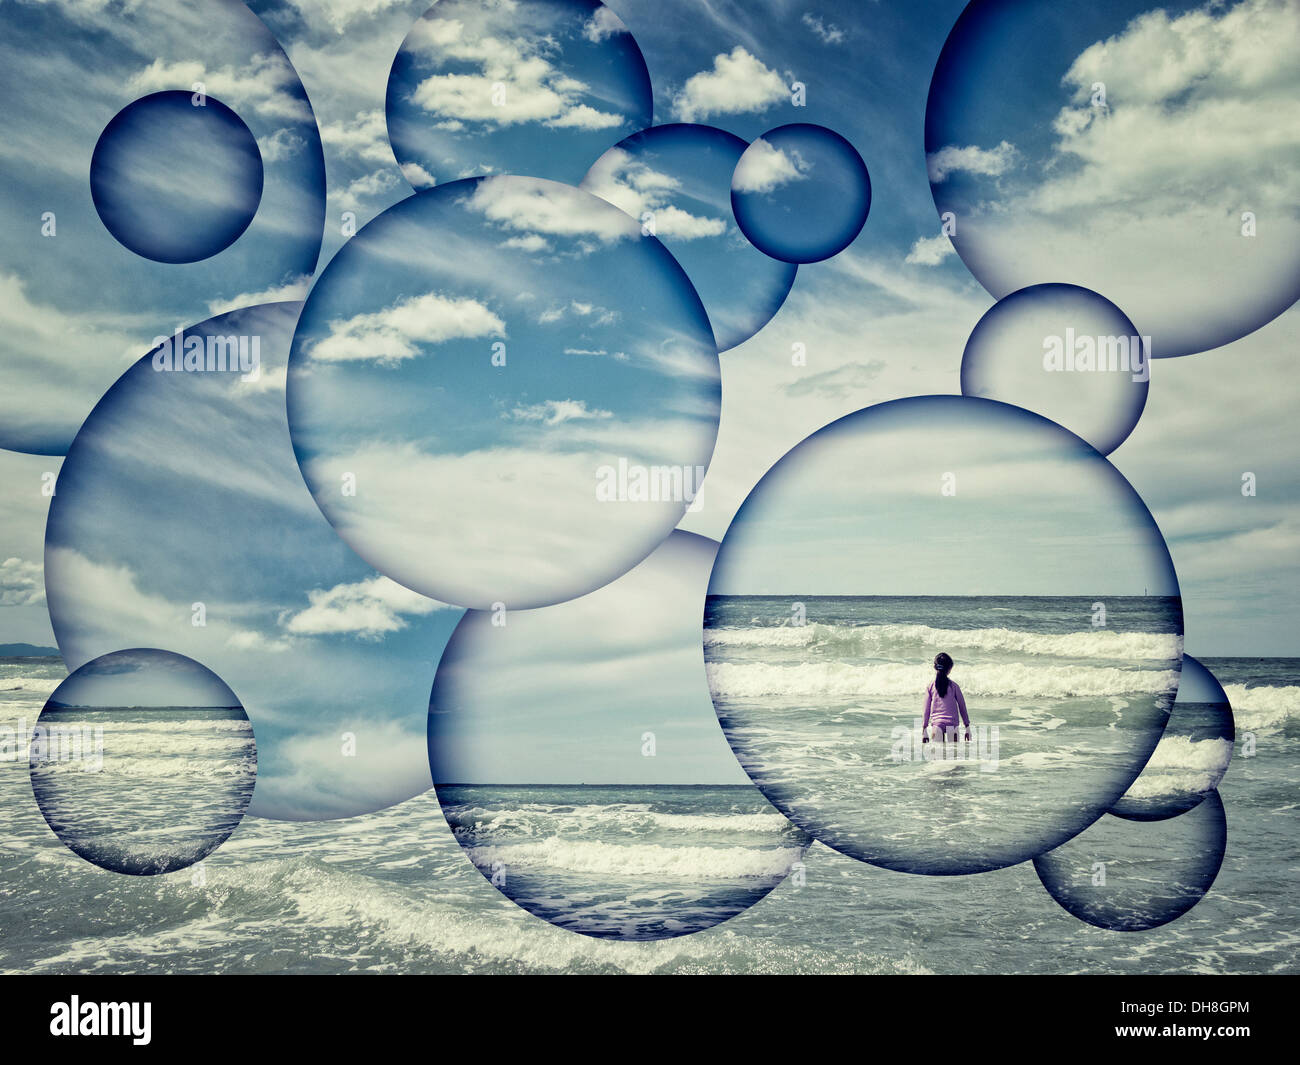 Fille, mer et vagues abstract. Photo Stock